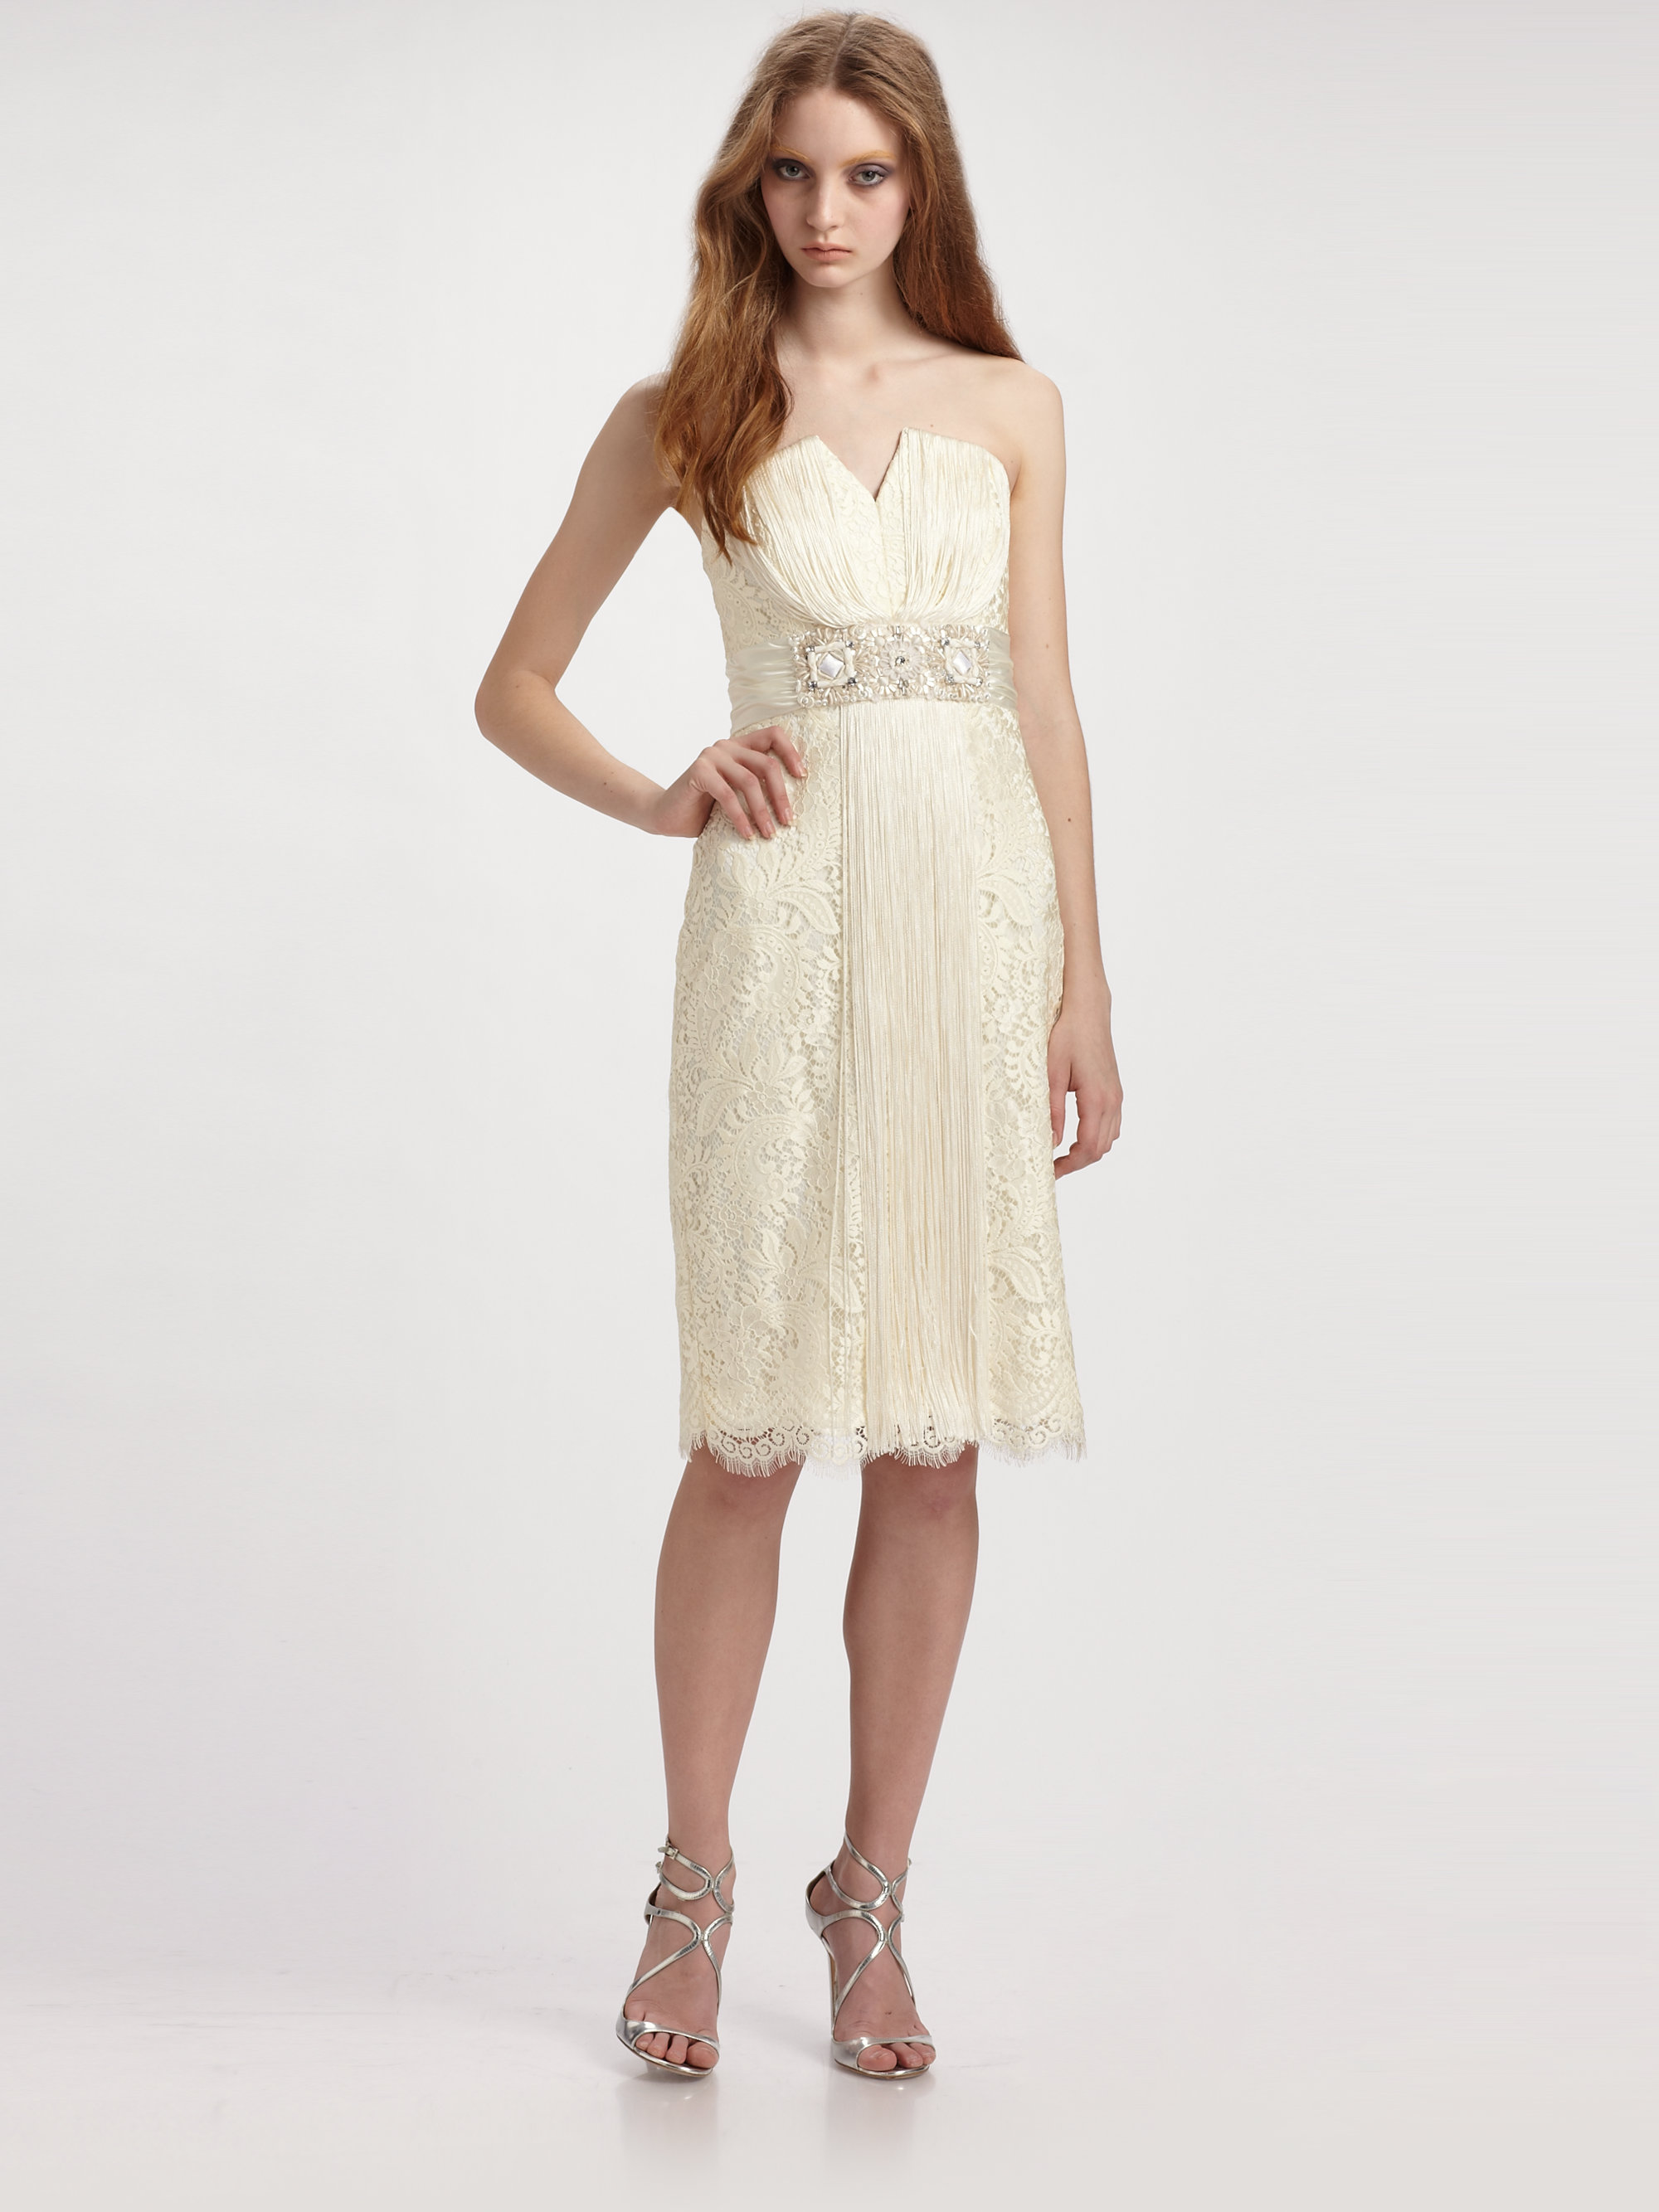 Lyst Badgley Mischka Strapless Lace Cocktail Dress In White